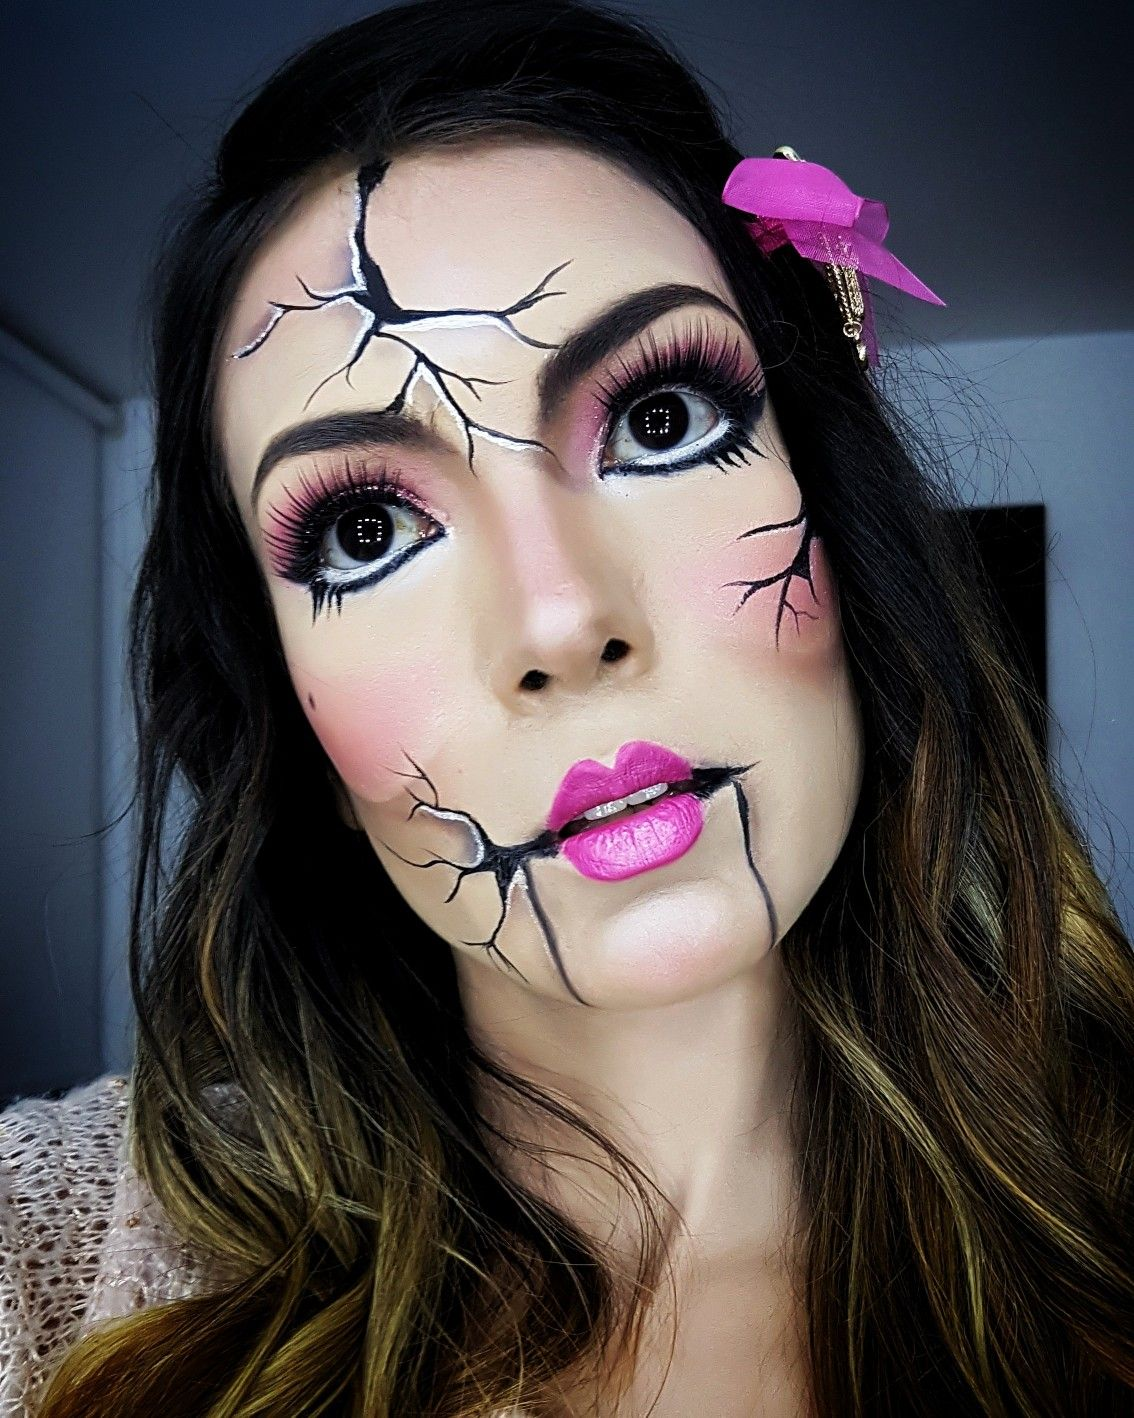 Broken doll halloween makeup by @wakeupbeauty10z en IG